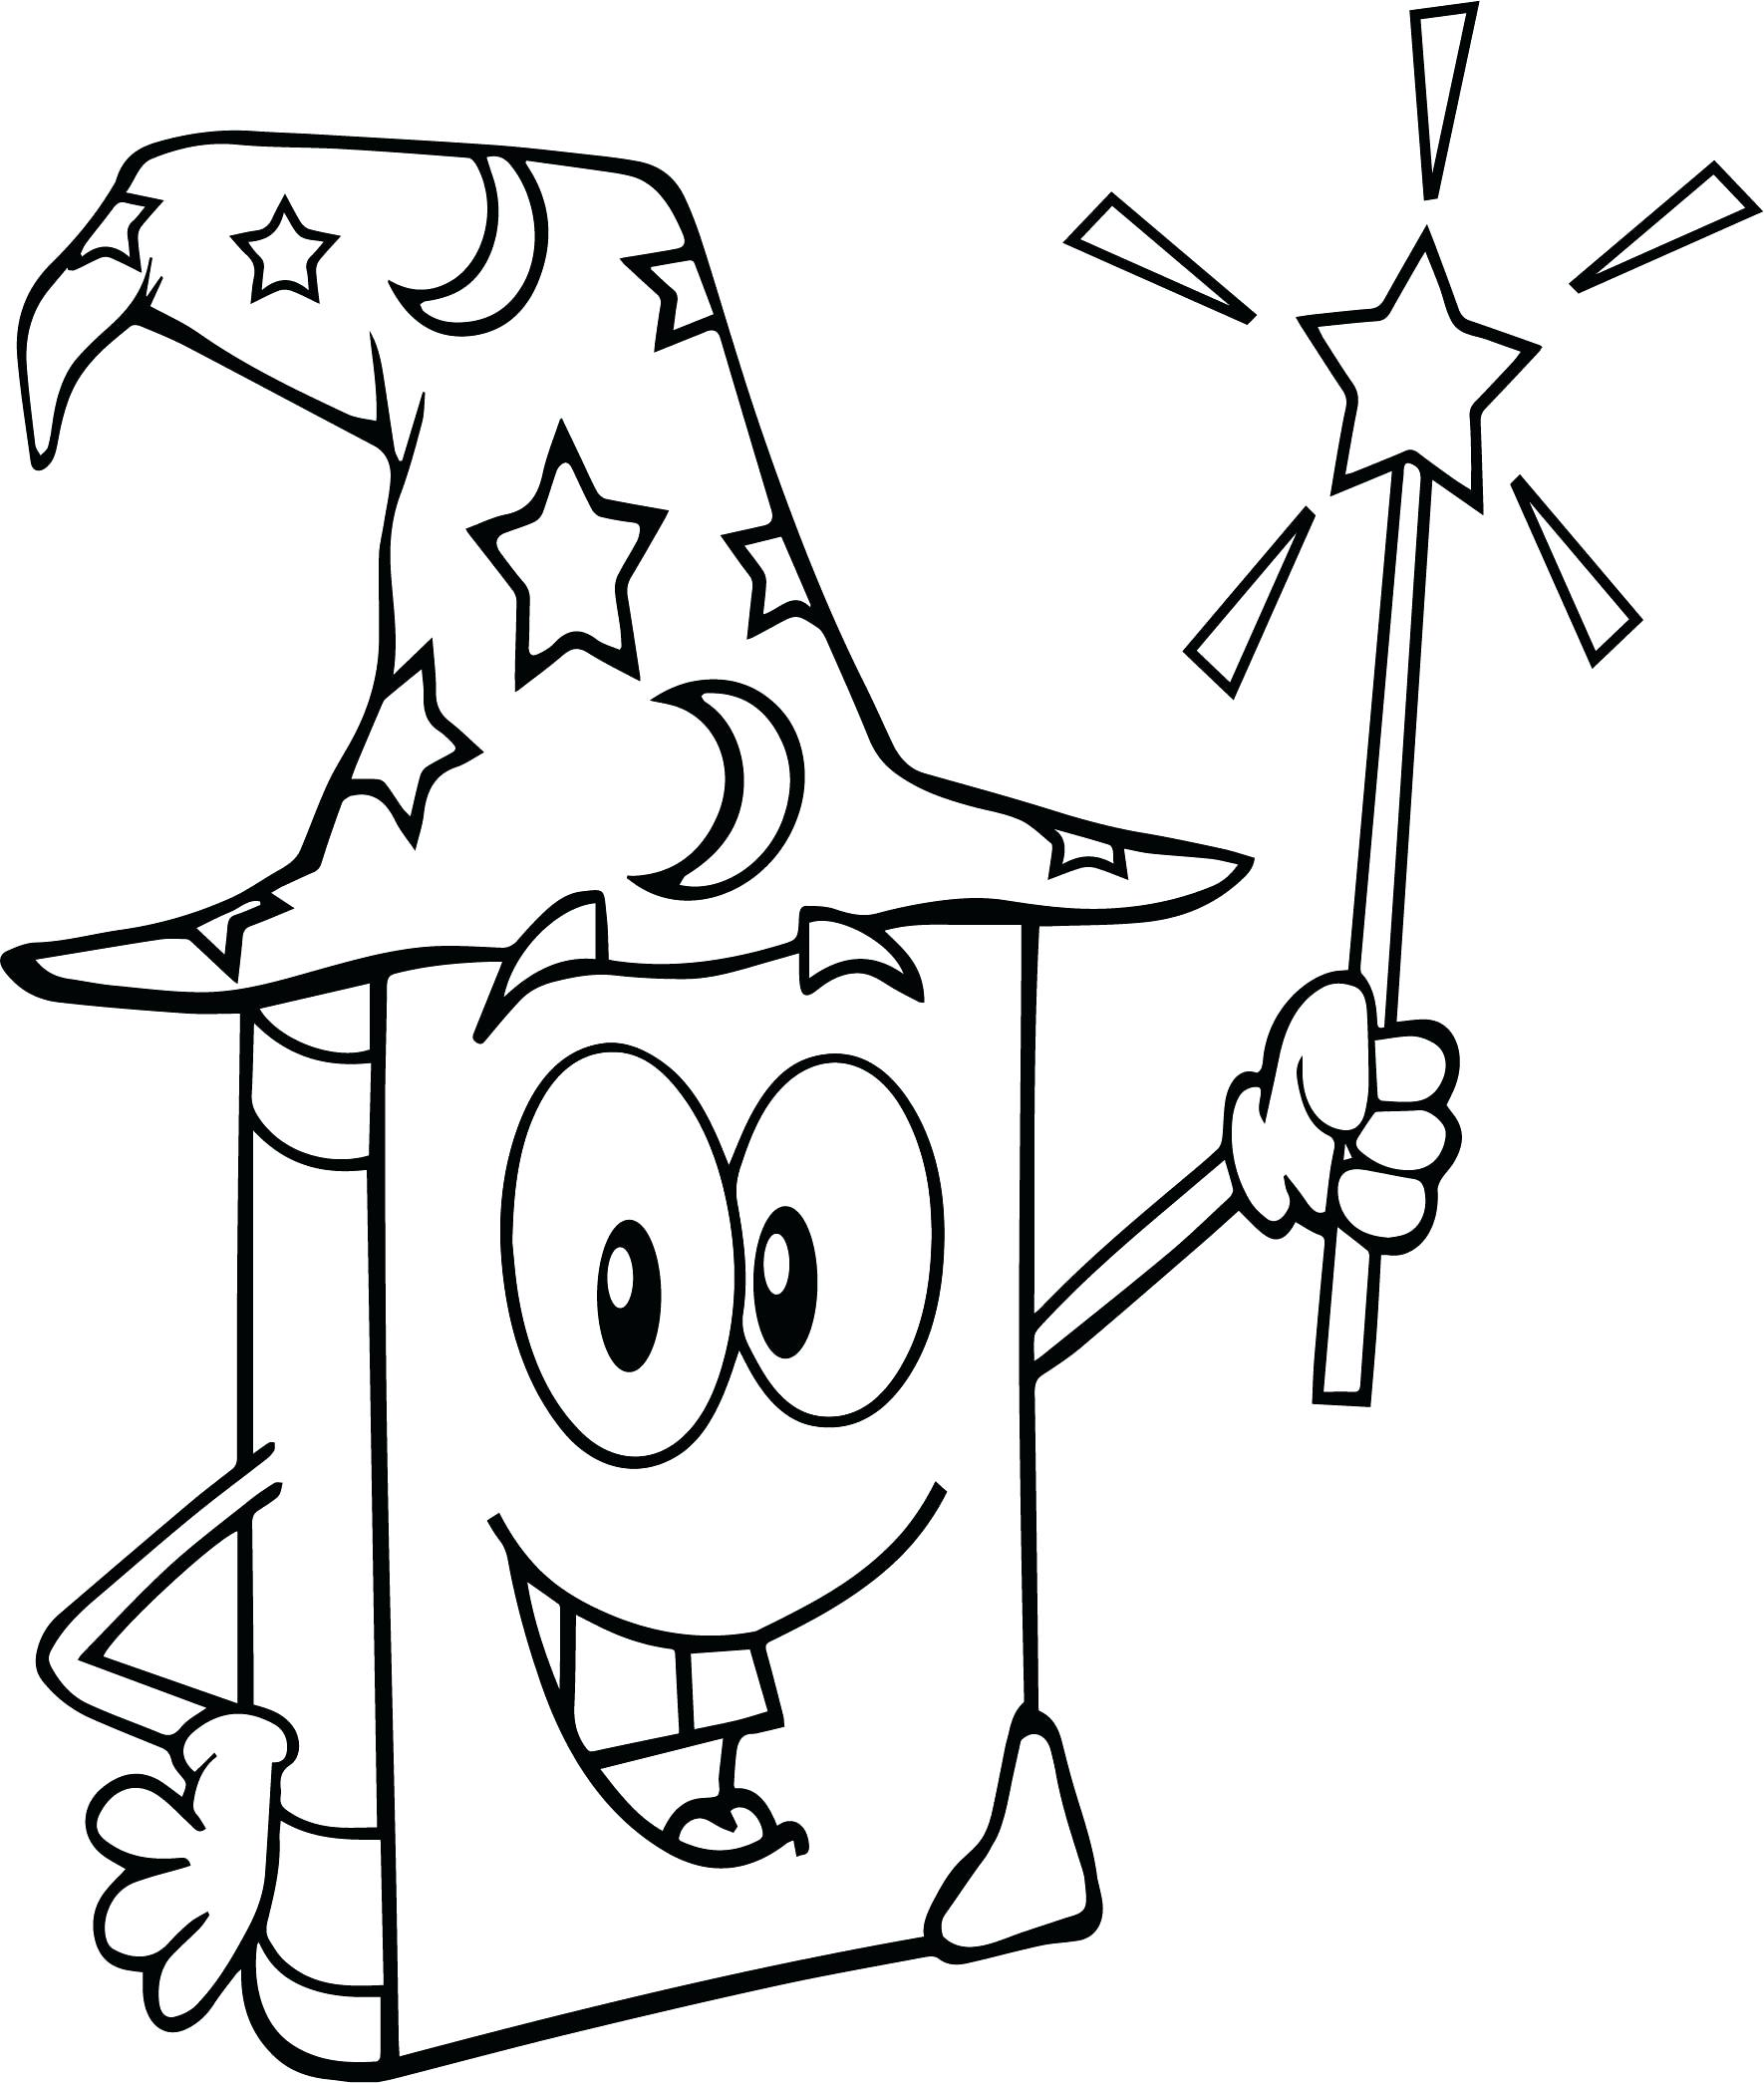 1770x2090 Magic Wand Coloring Page